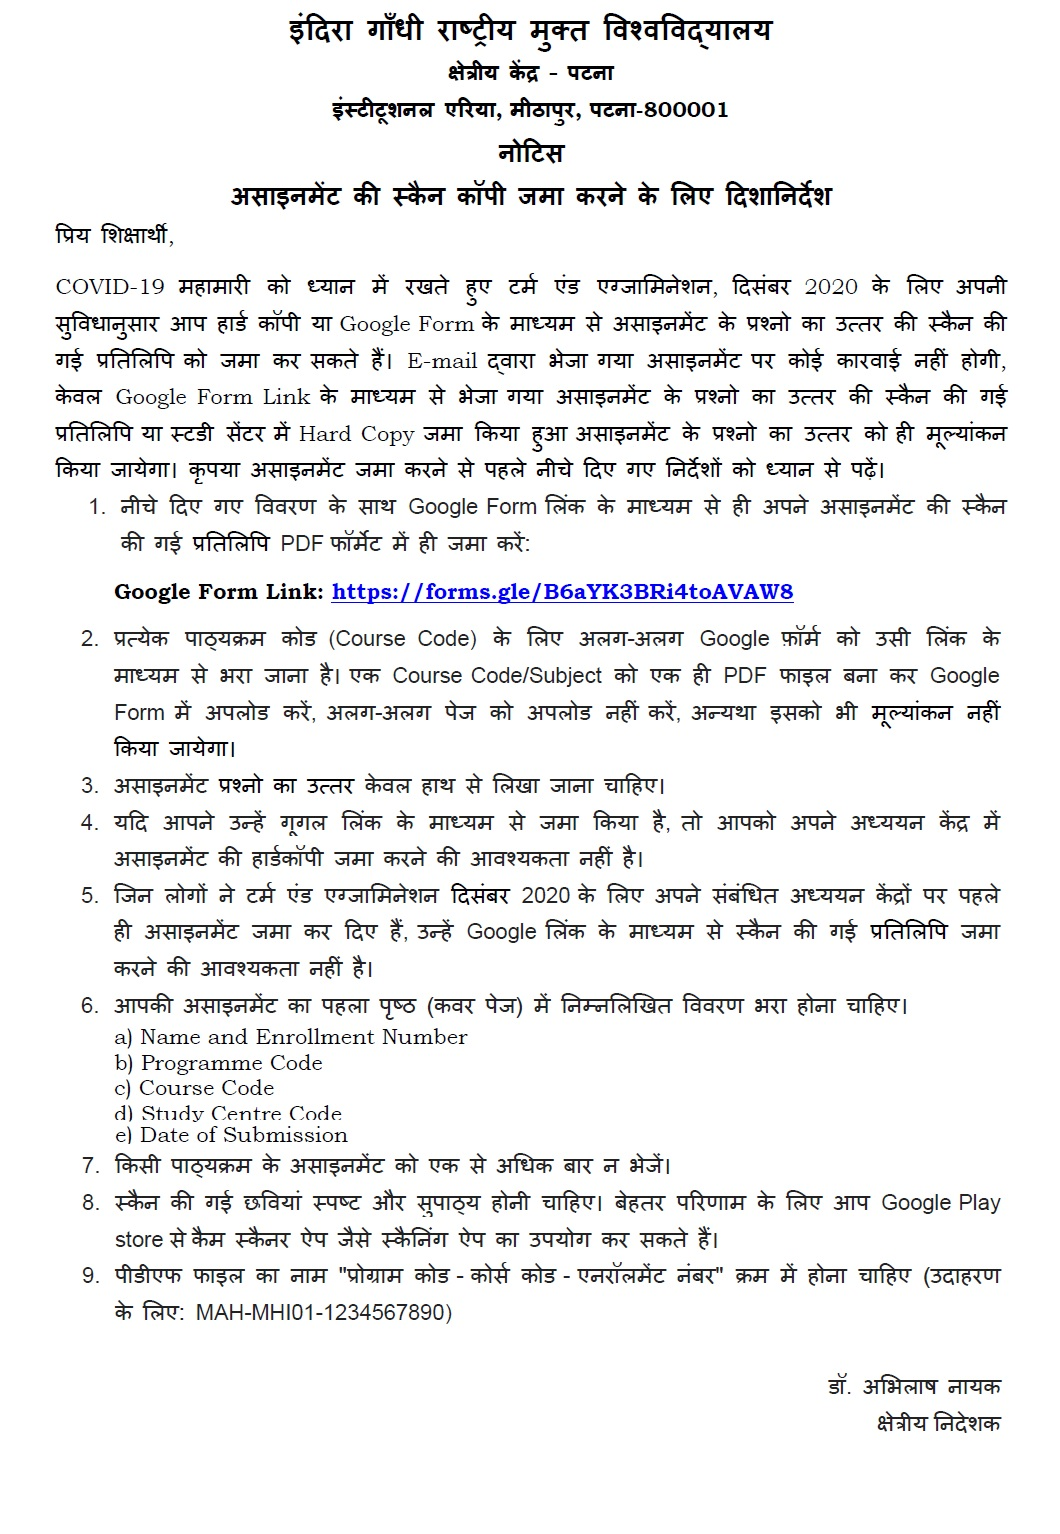 ignou-rc-patna-assignment-online-submit